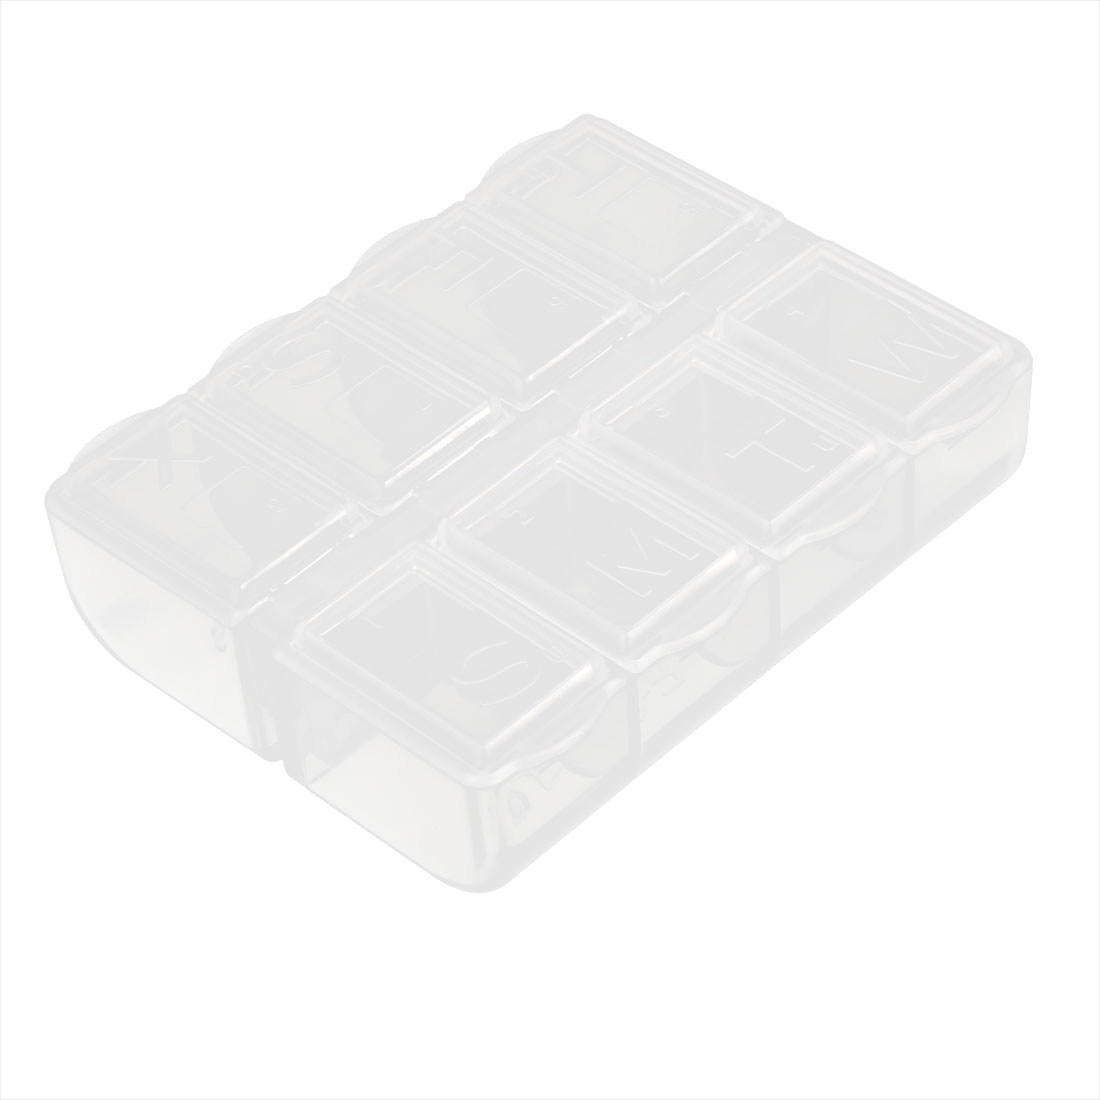 7.5cm x 6cm White Plastic 8 Components Storage Enclosure Case Box